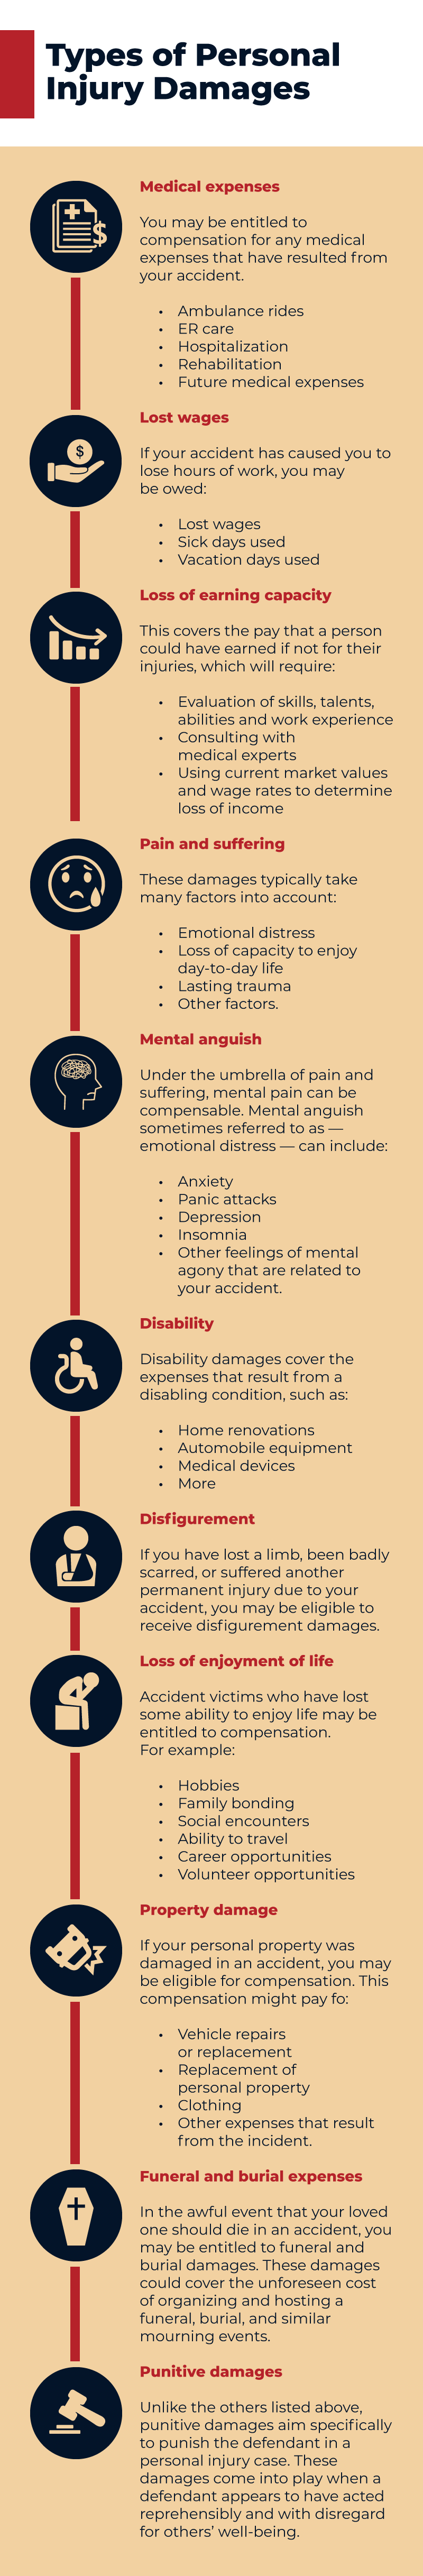 types of personal injury damages infographic